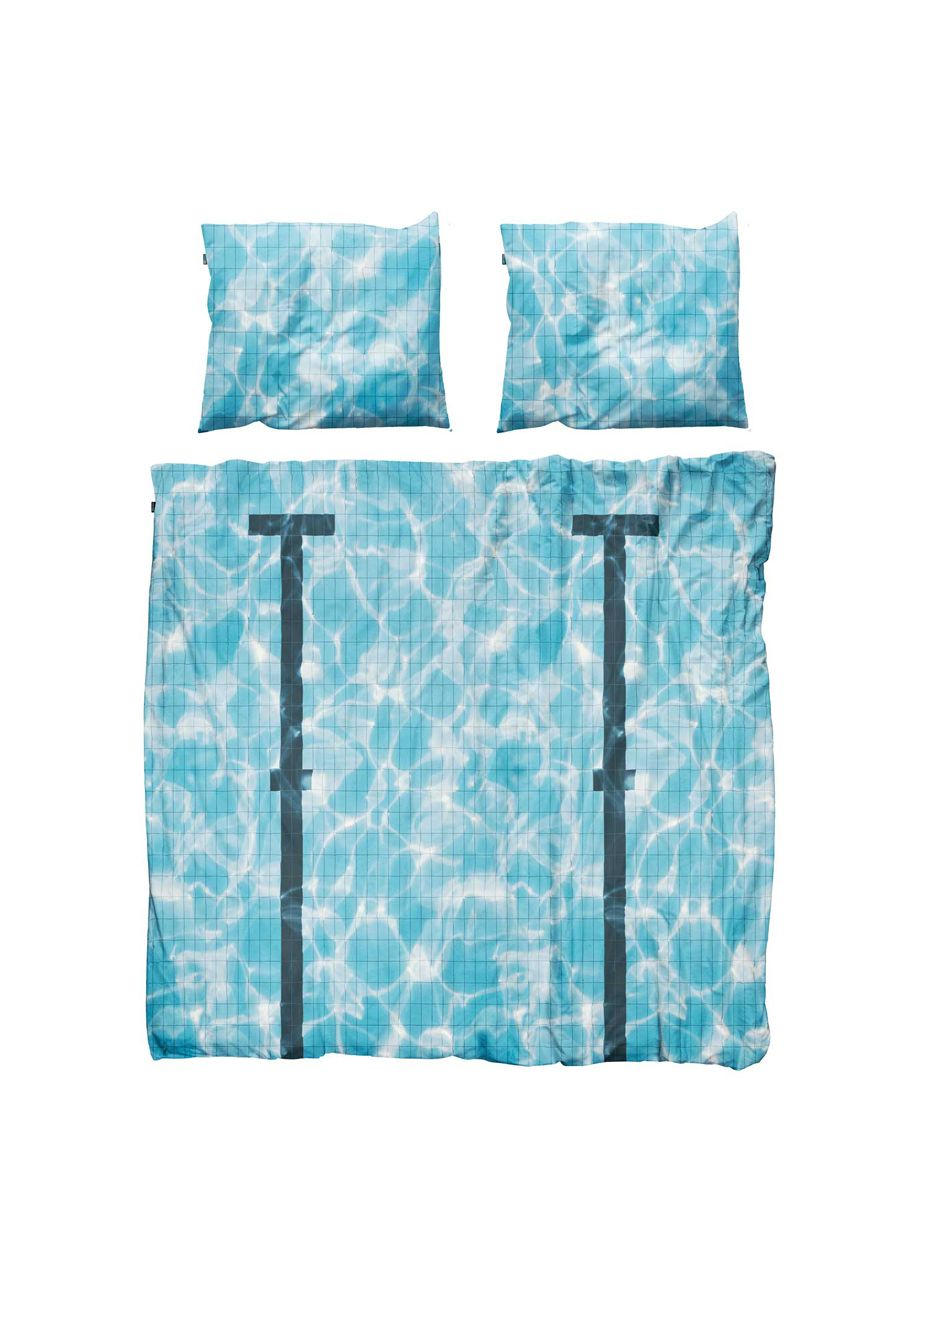 Queen Swimming Pool Duvet Cover Set Snurk Duvets Onceit